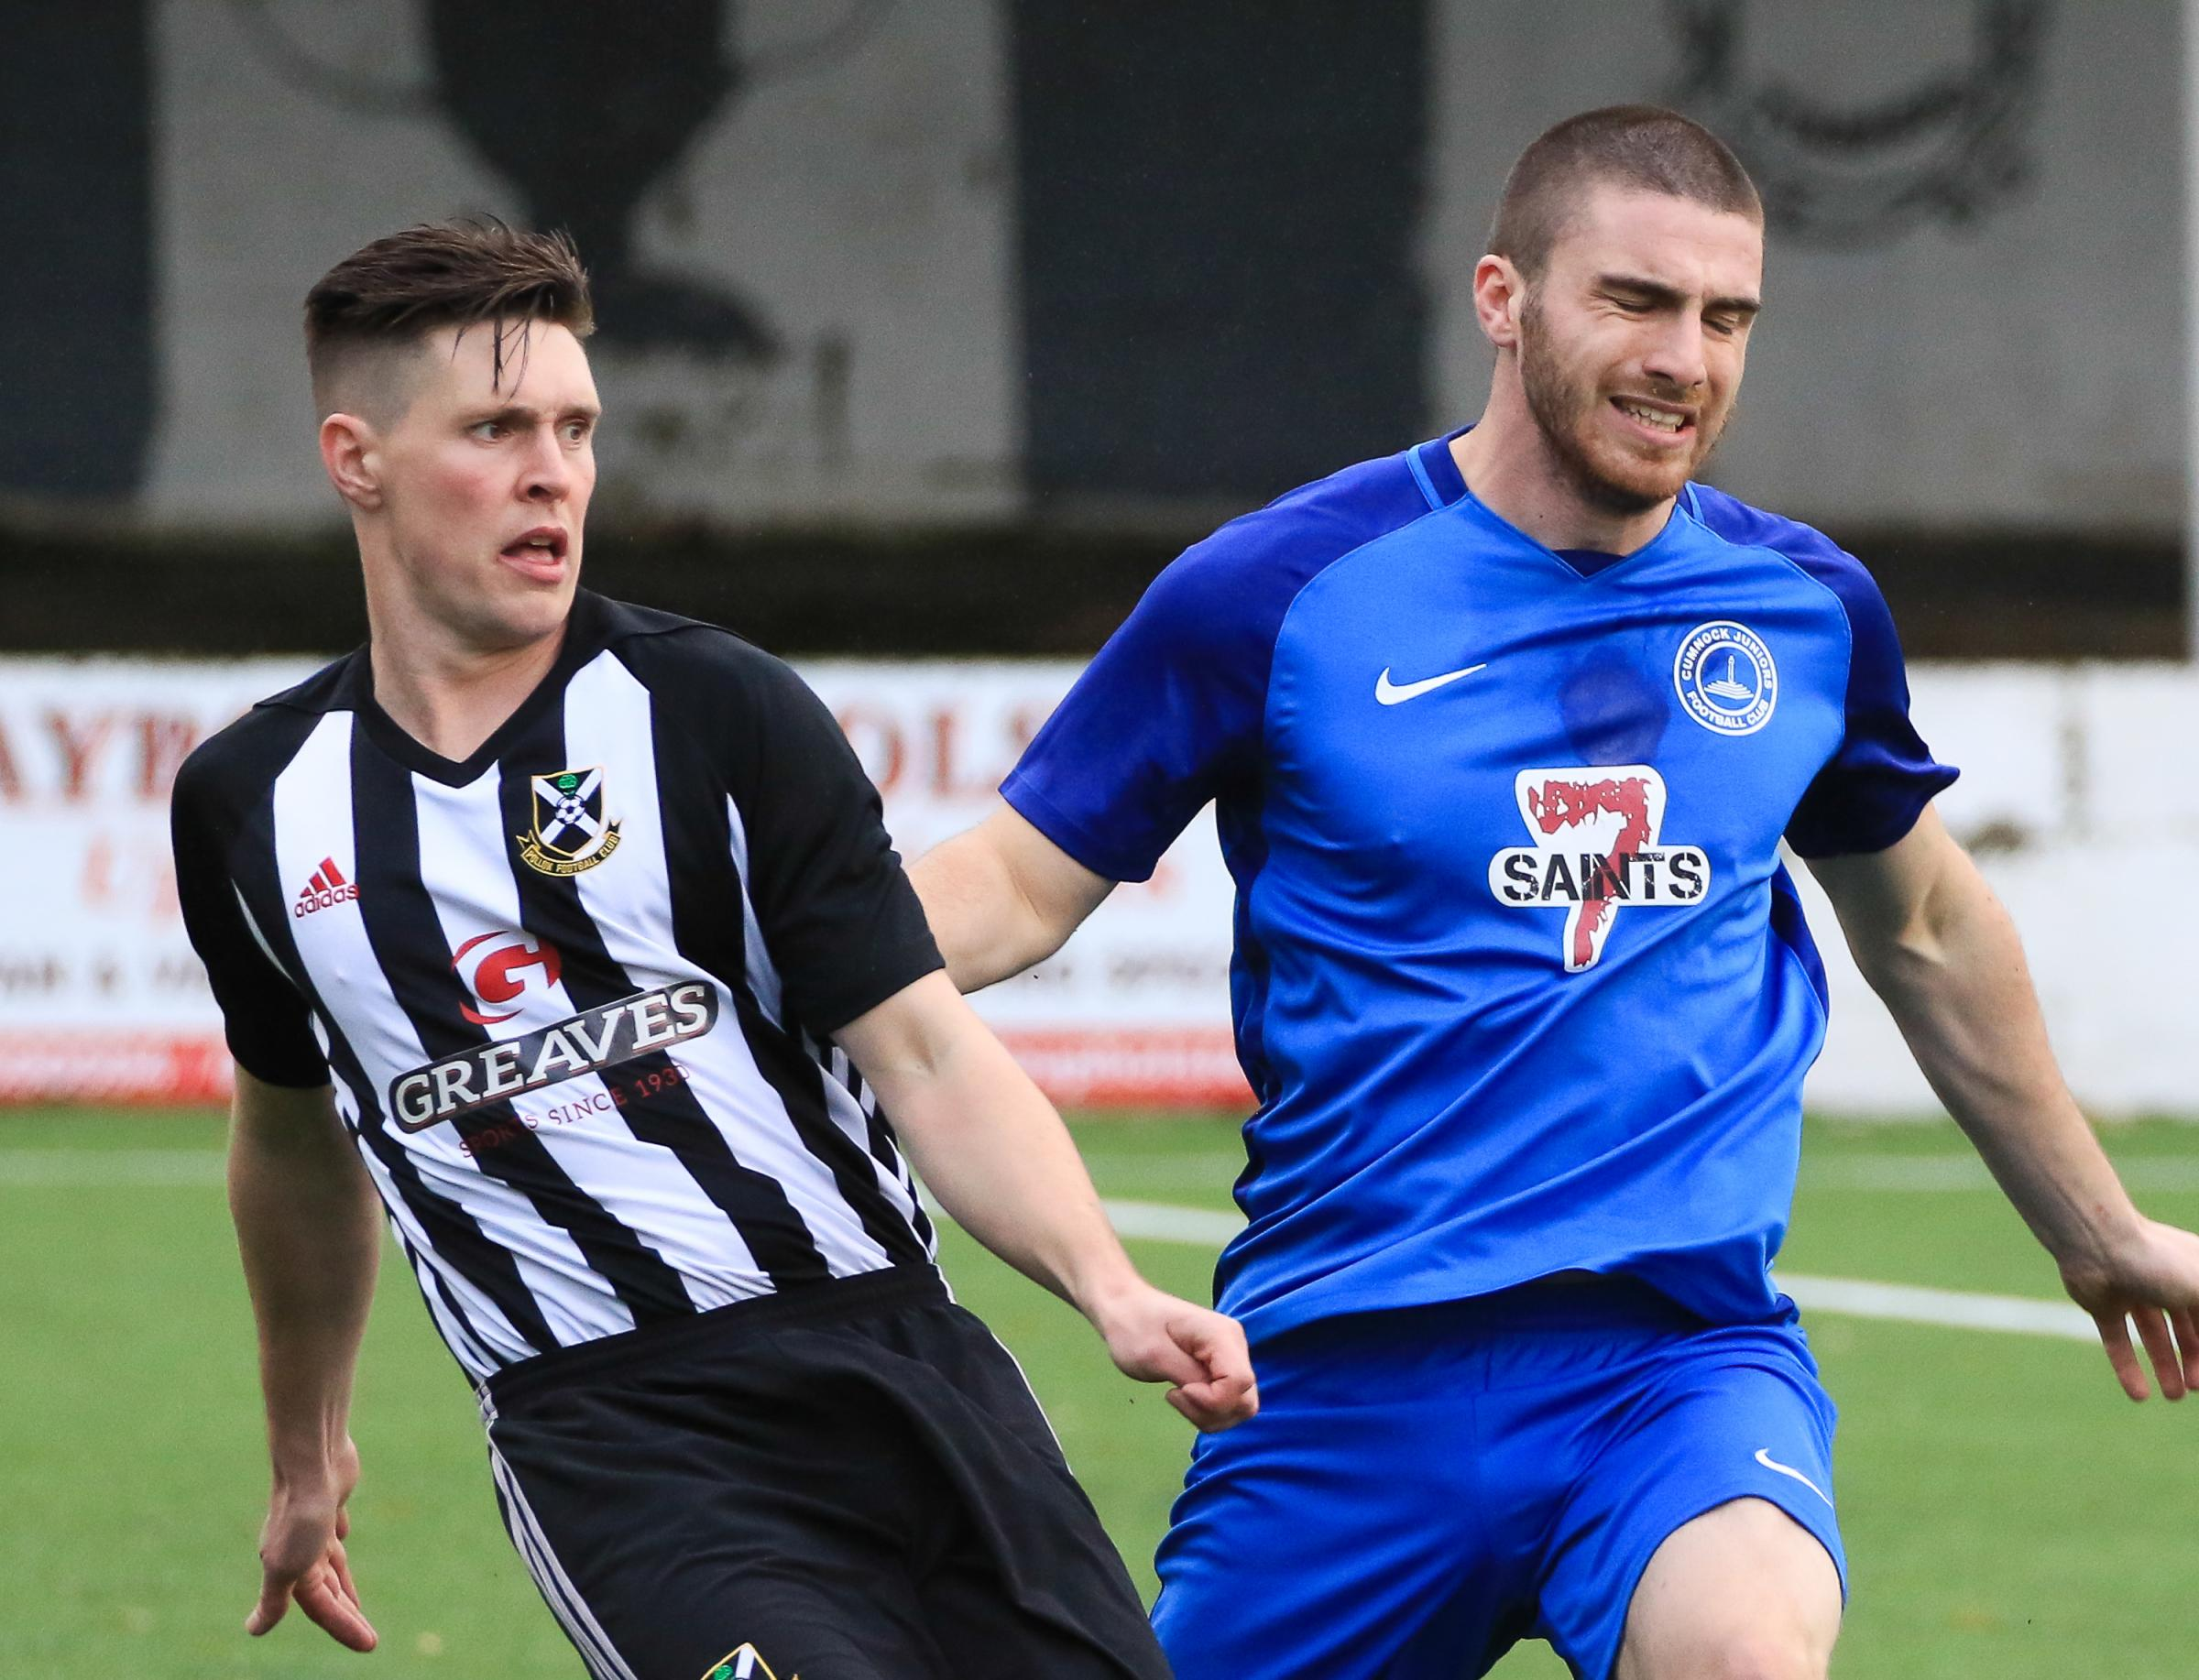 JUNIOR CUP: Cumnock lost to Pollok at Townhead Park